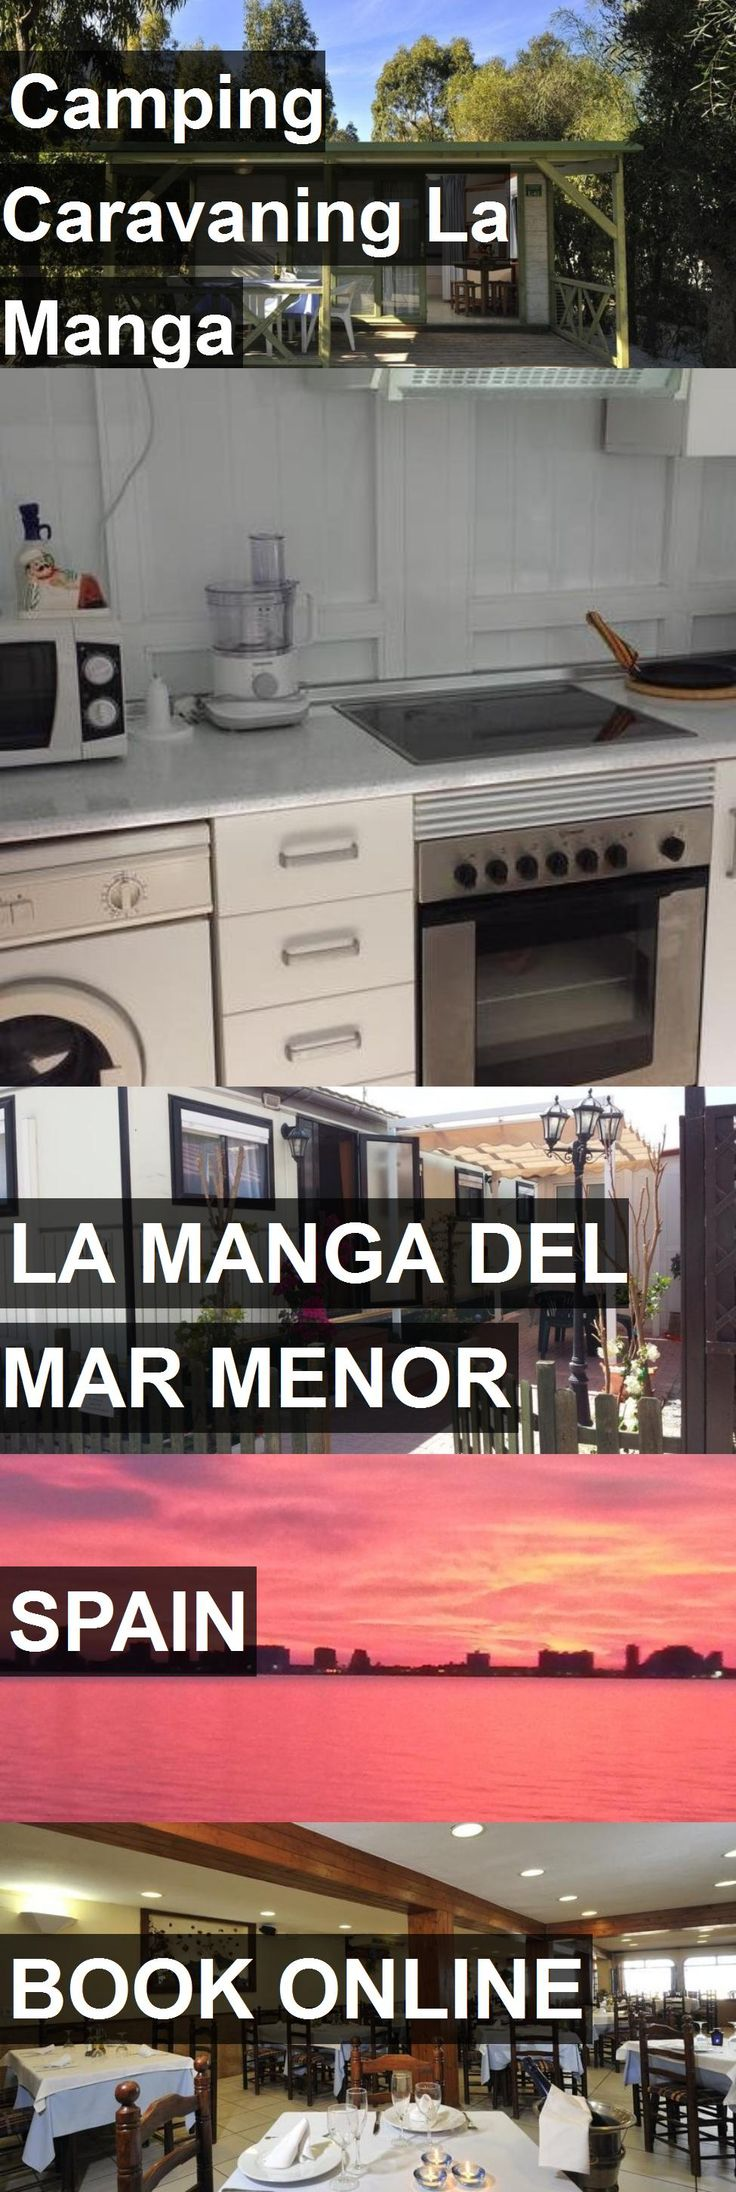 Hotel Camping Caravaning La Manga in La Manga del Mar Menor, Spain. For more information, photos, reviews and best prices please follow the link. #Spain #LaMangadelMarMenor #travel #vacation #hotel